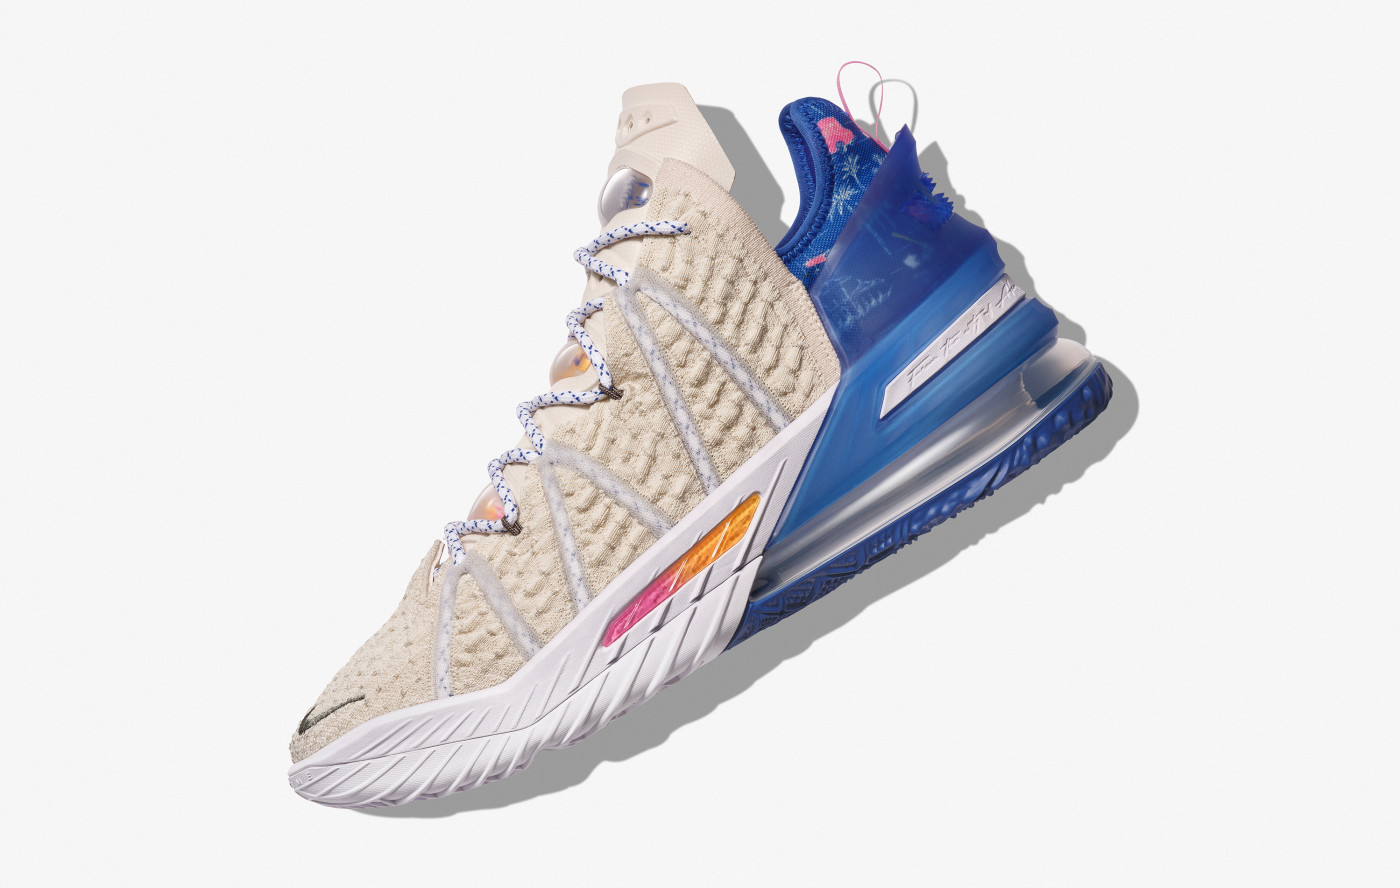 Nike LeBron 18 'Los Angeles By Day' Lateral